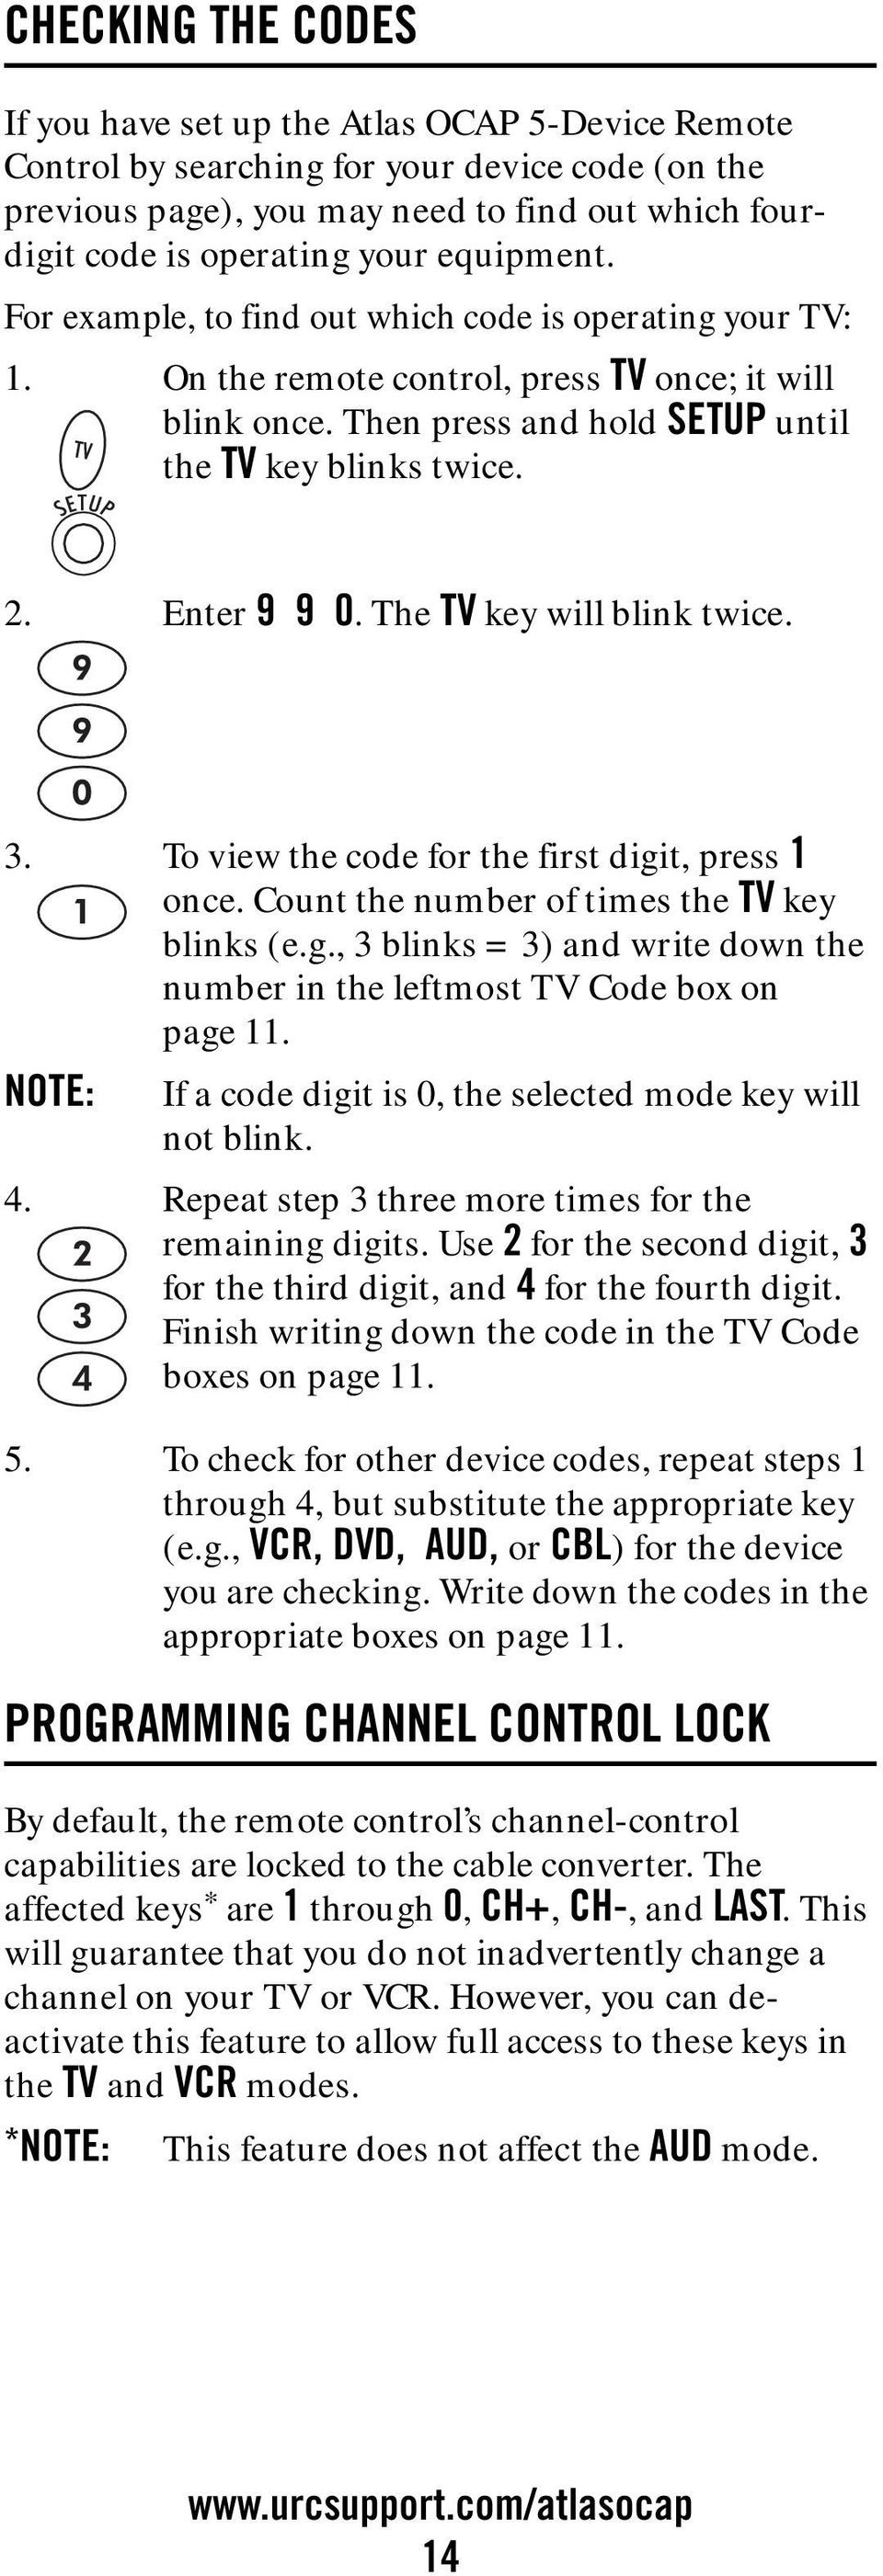 Enter 9 9 0. The TV key will blink twice. 3. To view the code for the first digit, press 1 once. Count the number of times the TV key blinks (e.g., 3 blinks = 3) and write down the number in the leftmost TV Code box on page 11.